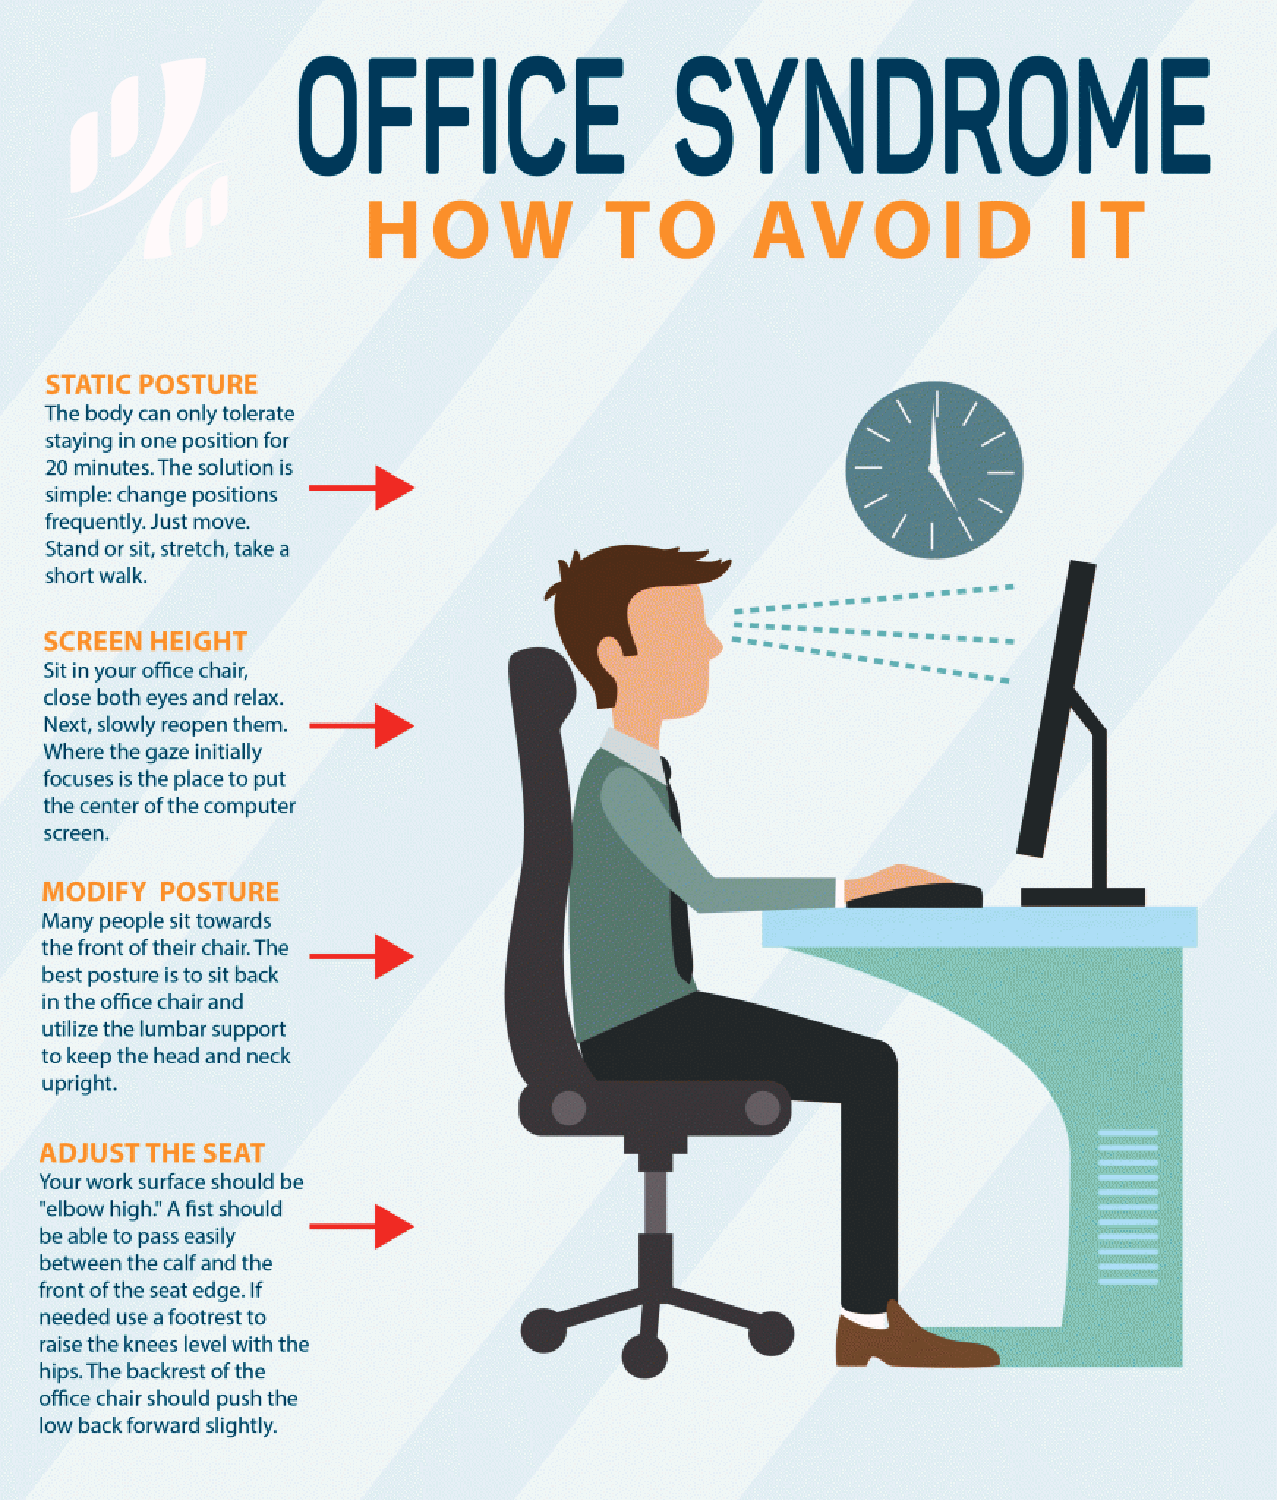 Office Chair Posture Office Syndrome How To Avoid It Infographic Posture